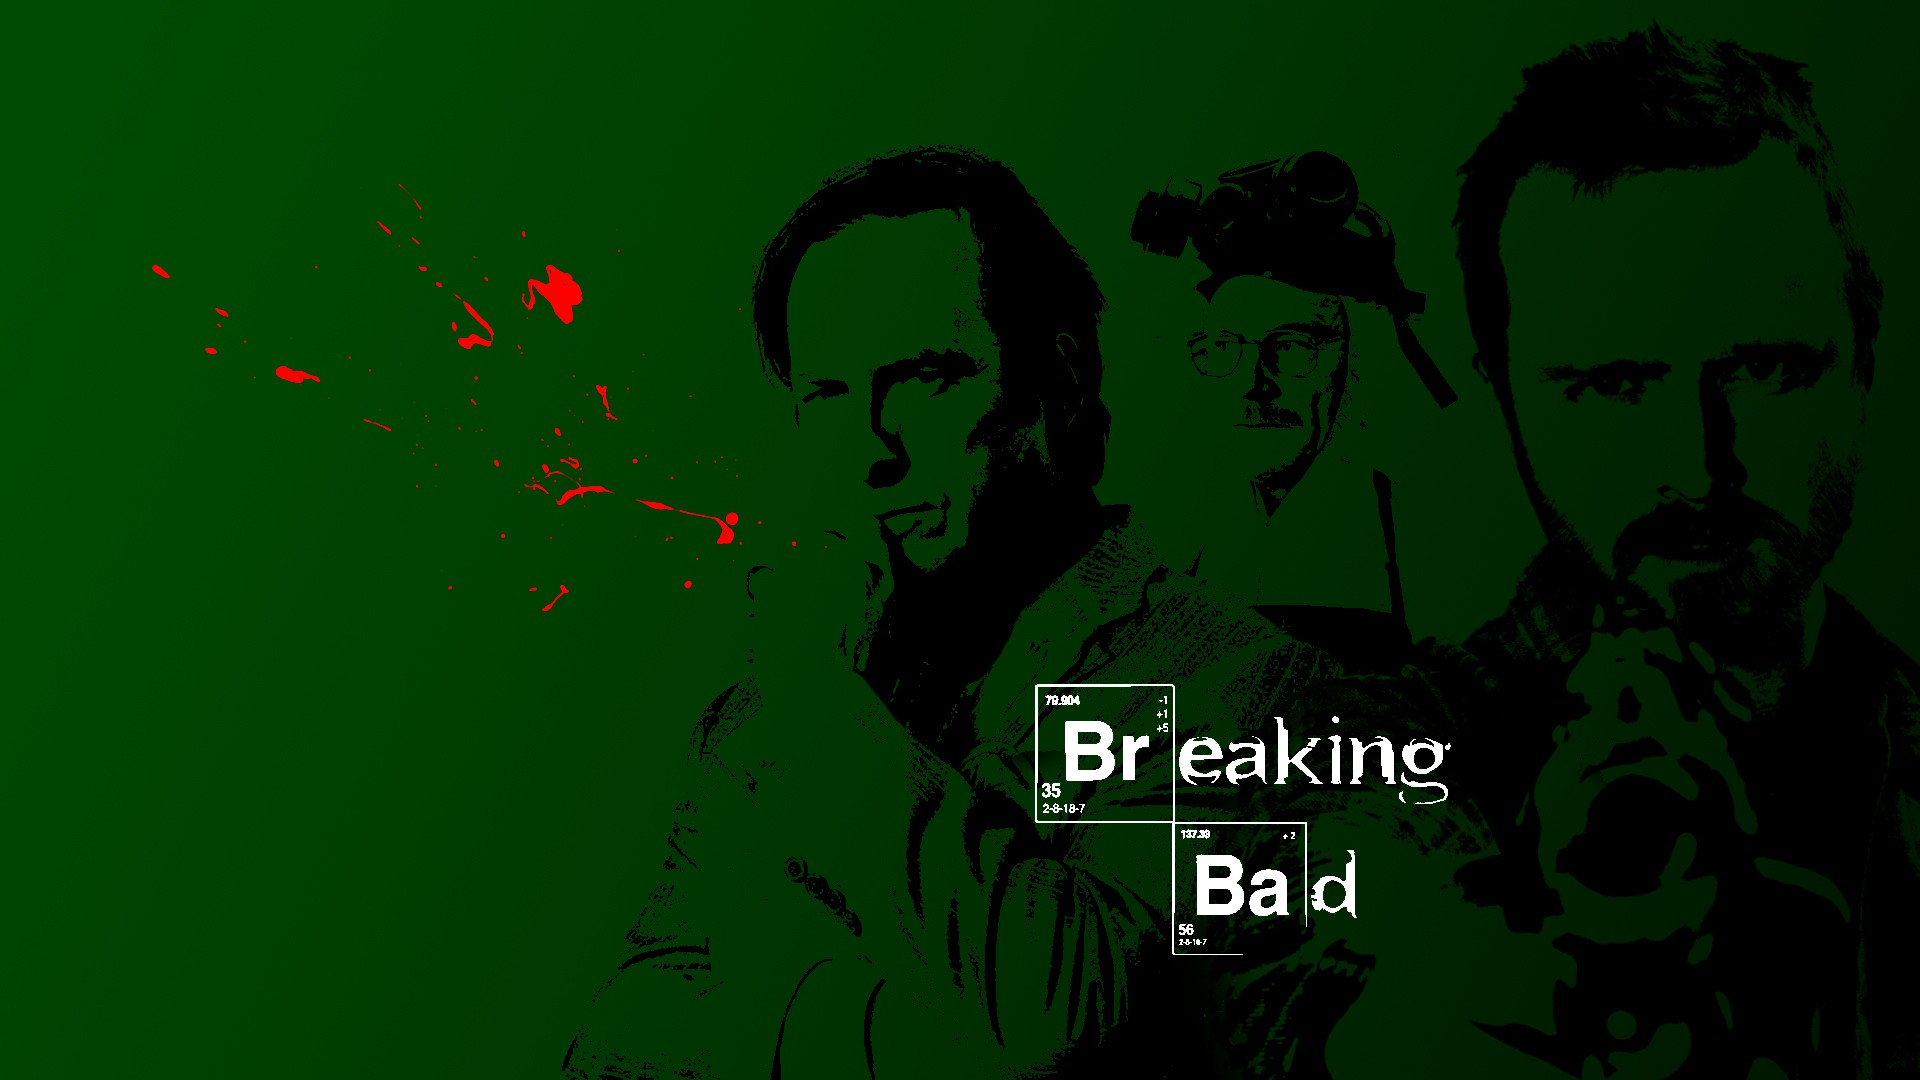 General 1920x1080 Breaking Bad Heisenberg Saul Goodman Jesse Pinkman Walter White